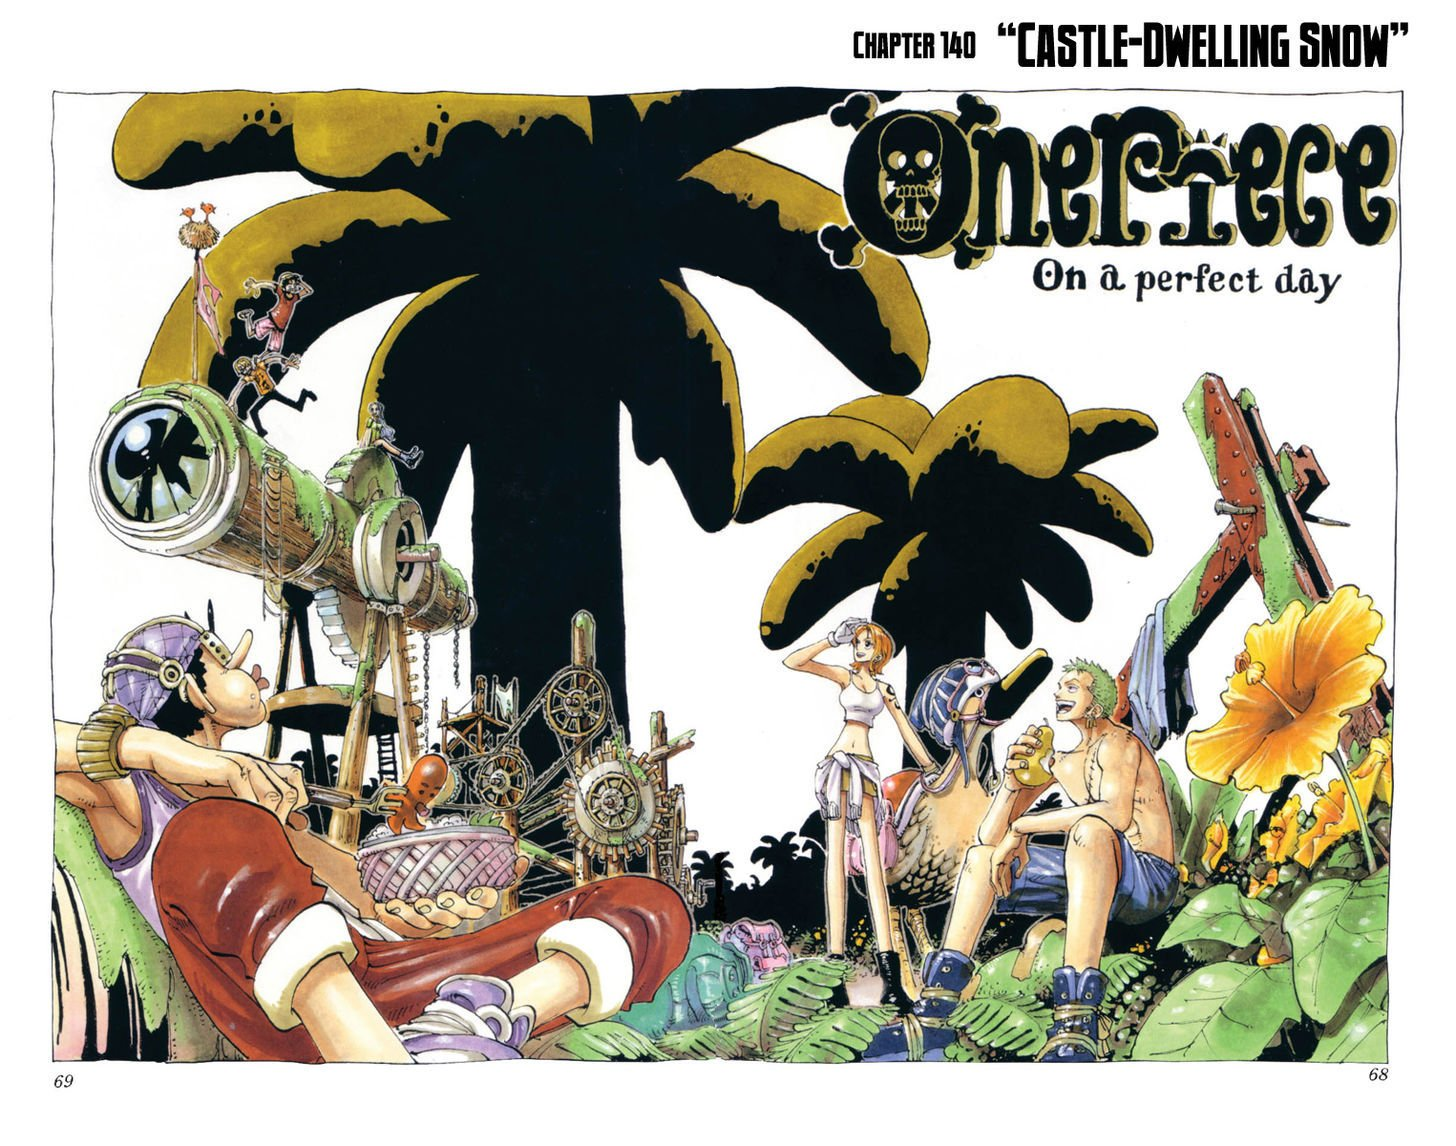 https://im.nineanime.com/comics/pic9/32/96/2488/OnePiece1401111.jpg Page 2